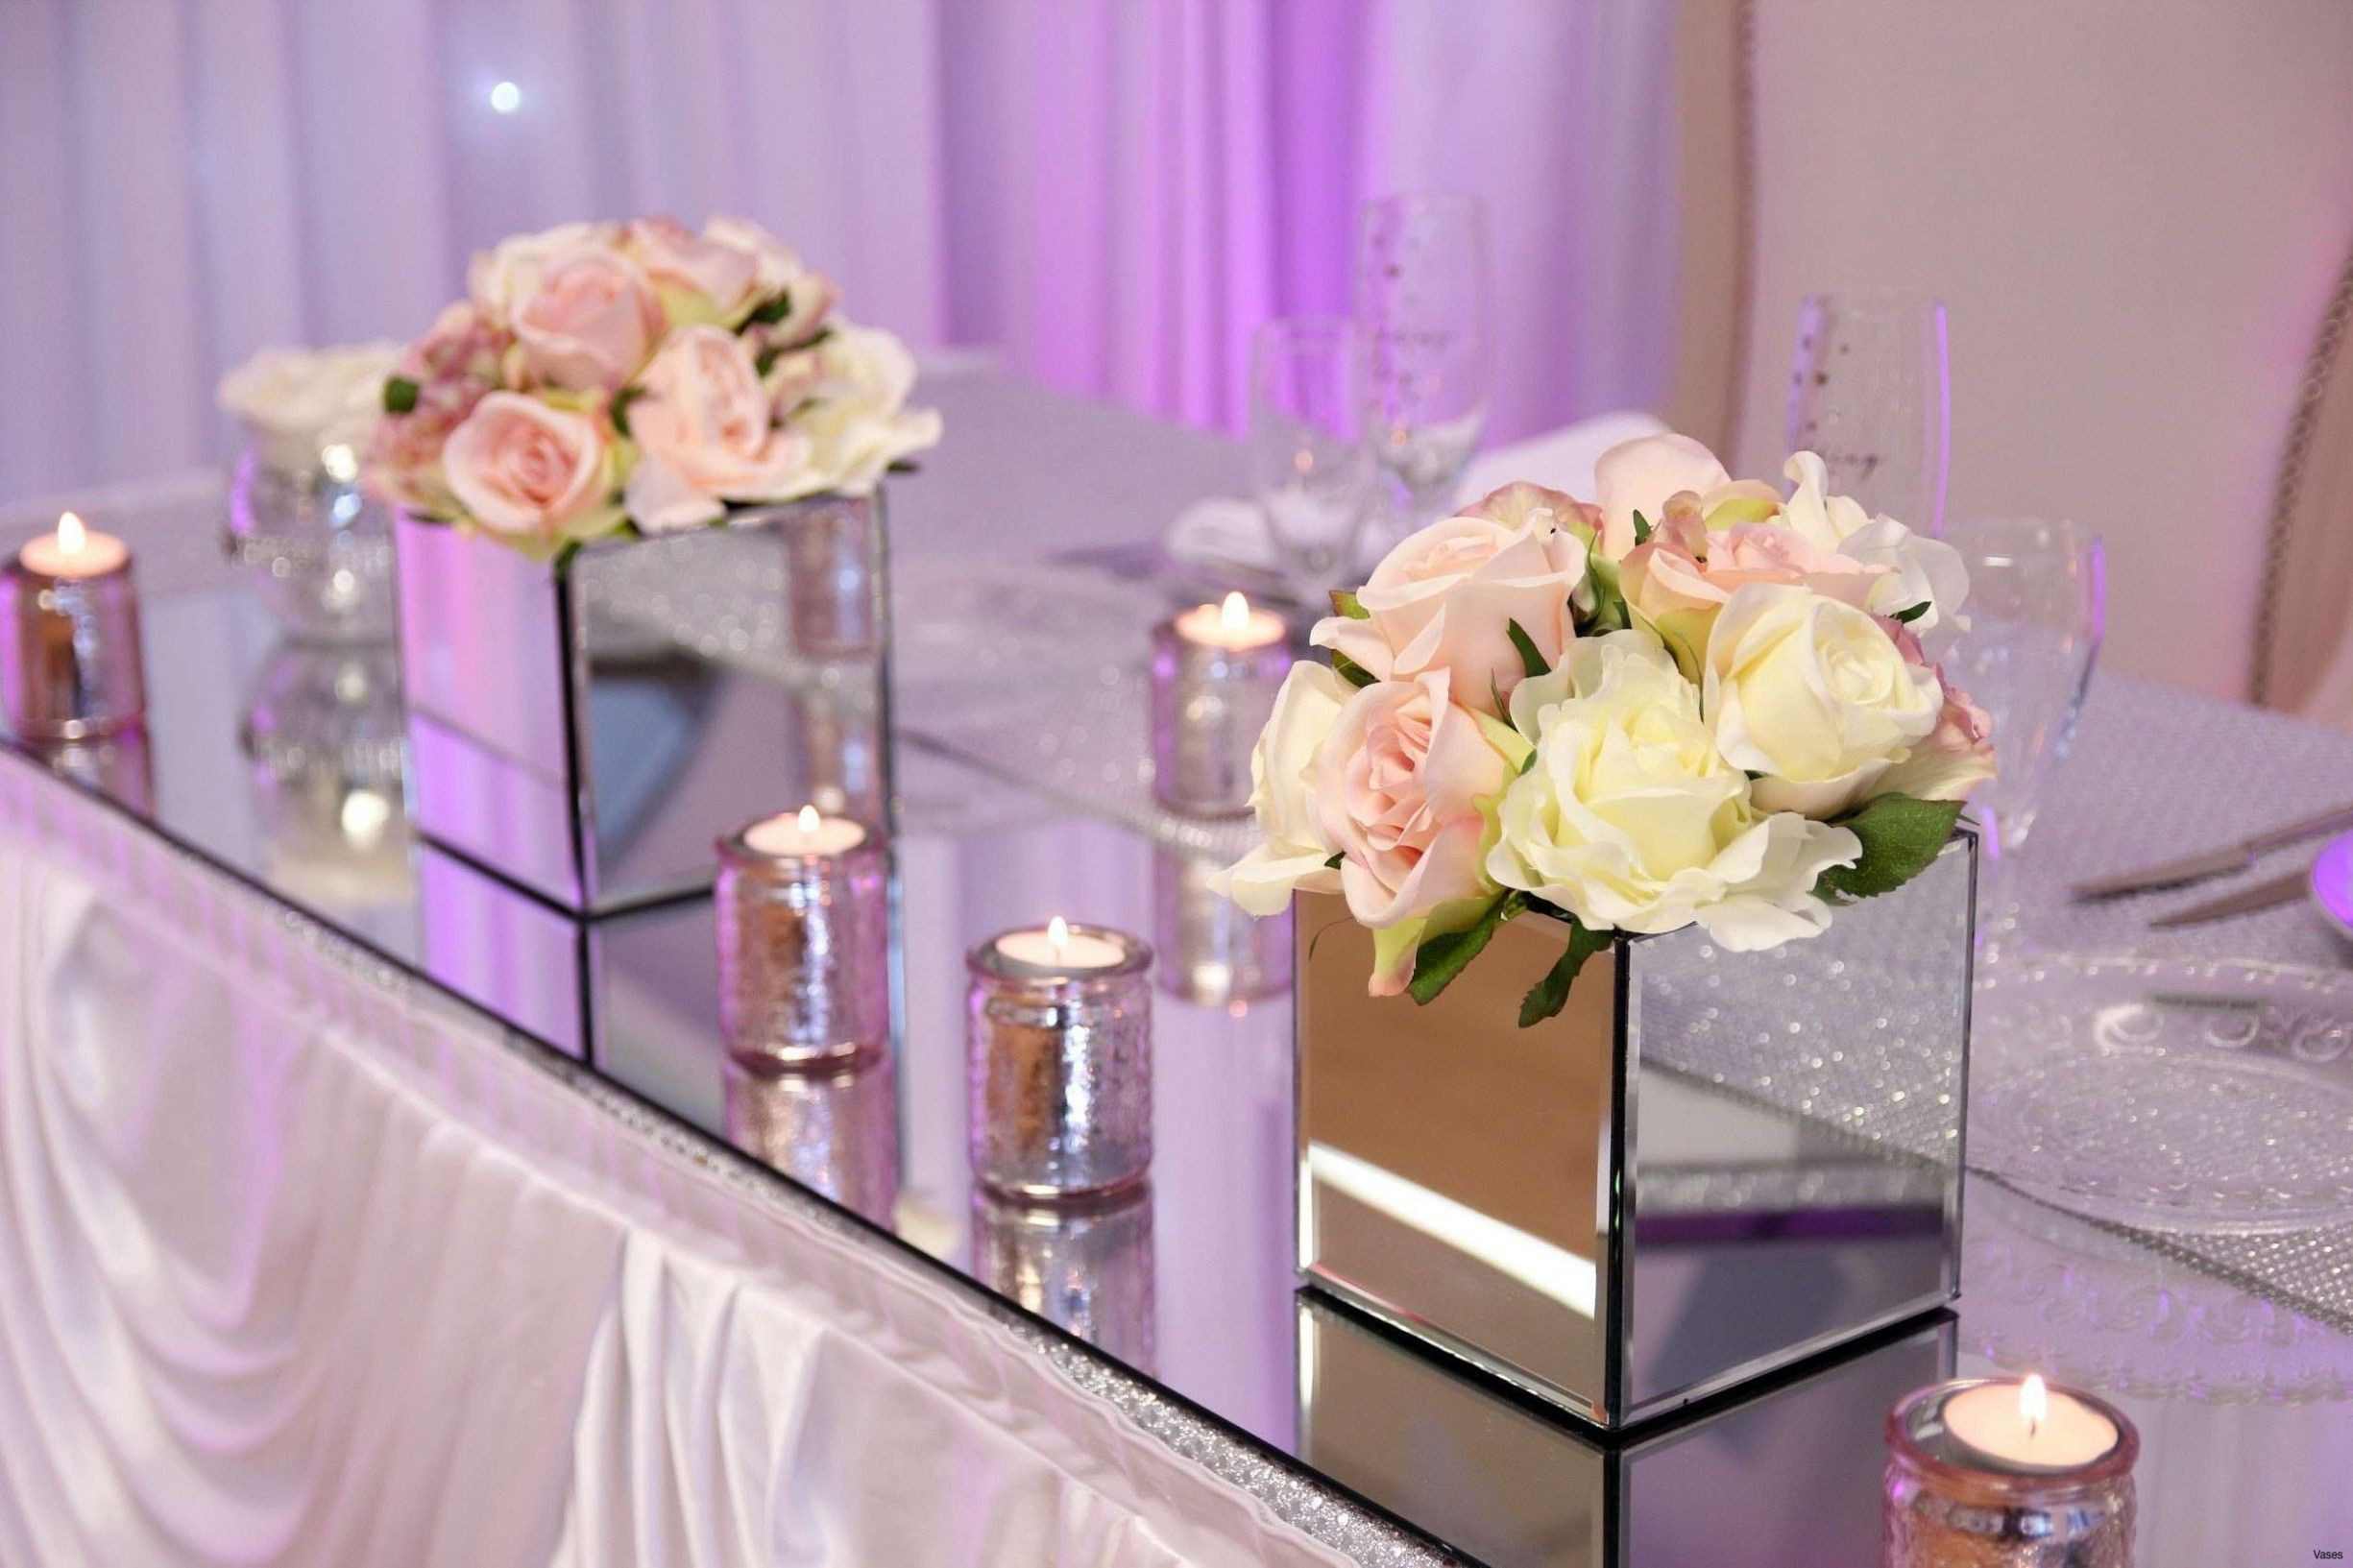 flower vase design of flower vase ideas elegant mirrored square vase 3h vases mirror table inside flower vase ideas elegant mirrored square vase 3h vases mirror table decorationi 0d weddings